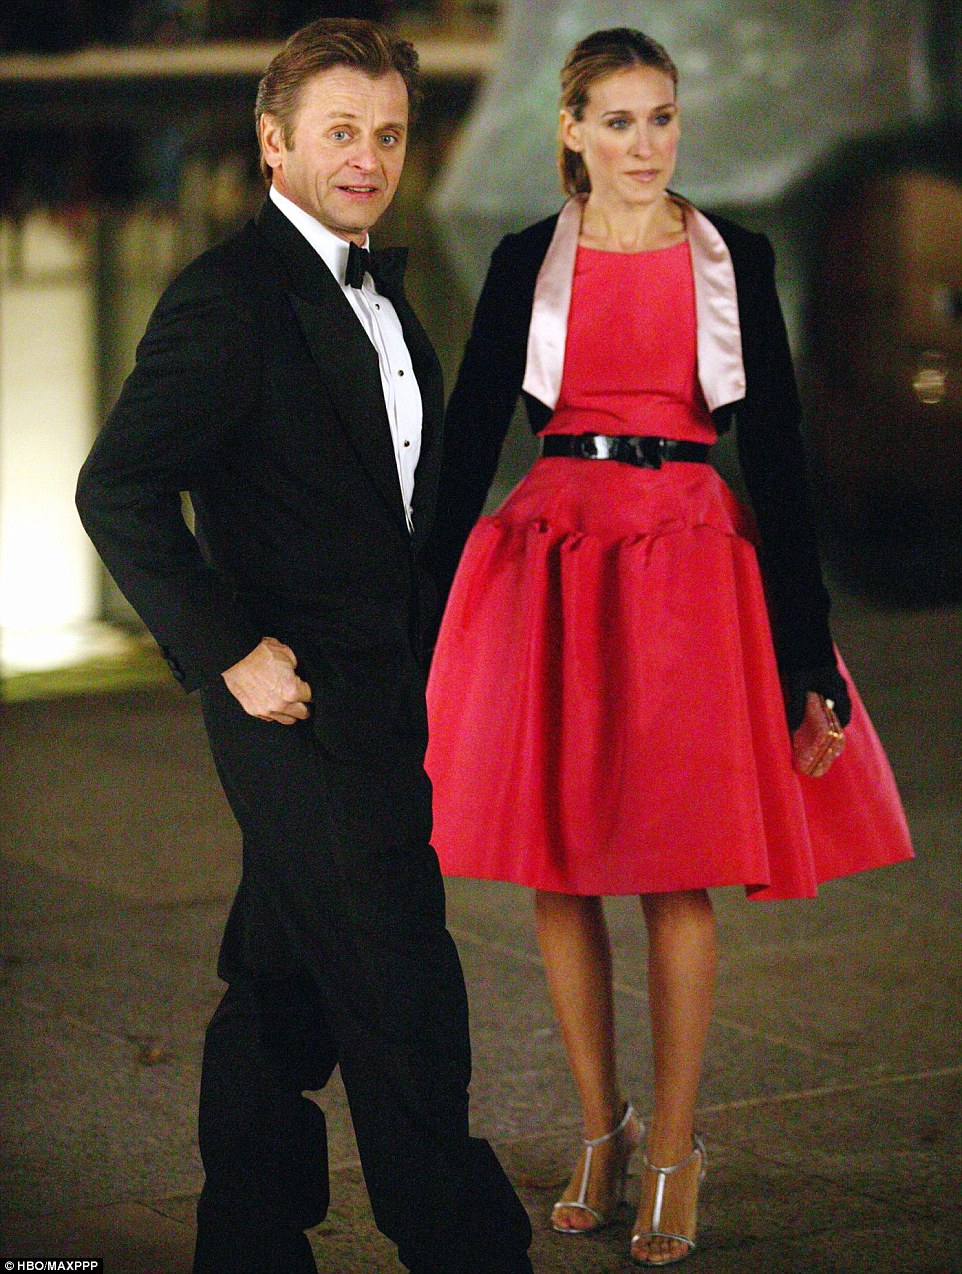 Sarah Jessica Parker in iconic pink Oscar de la Renta dress featured in Sex and the City.